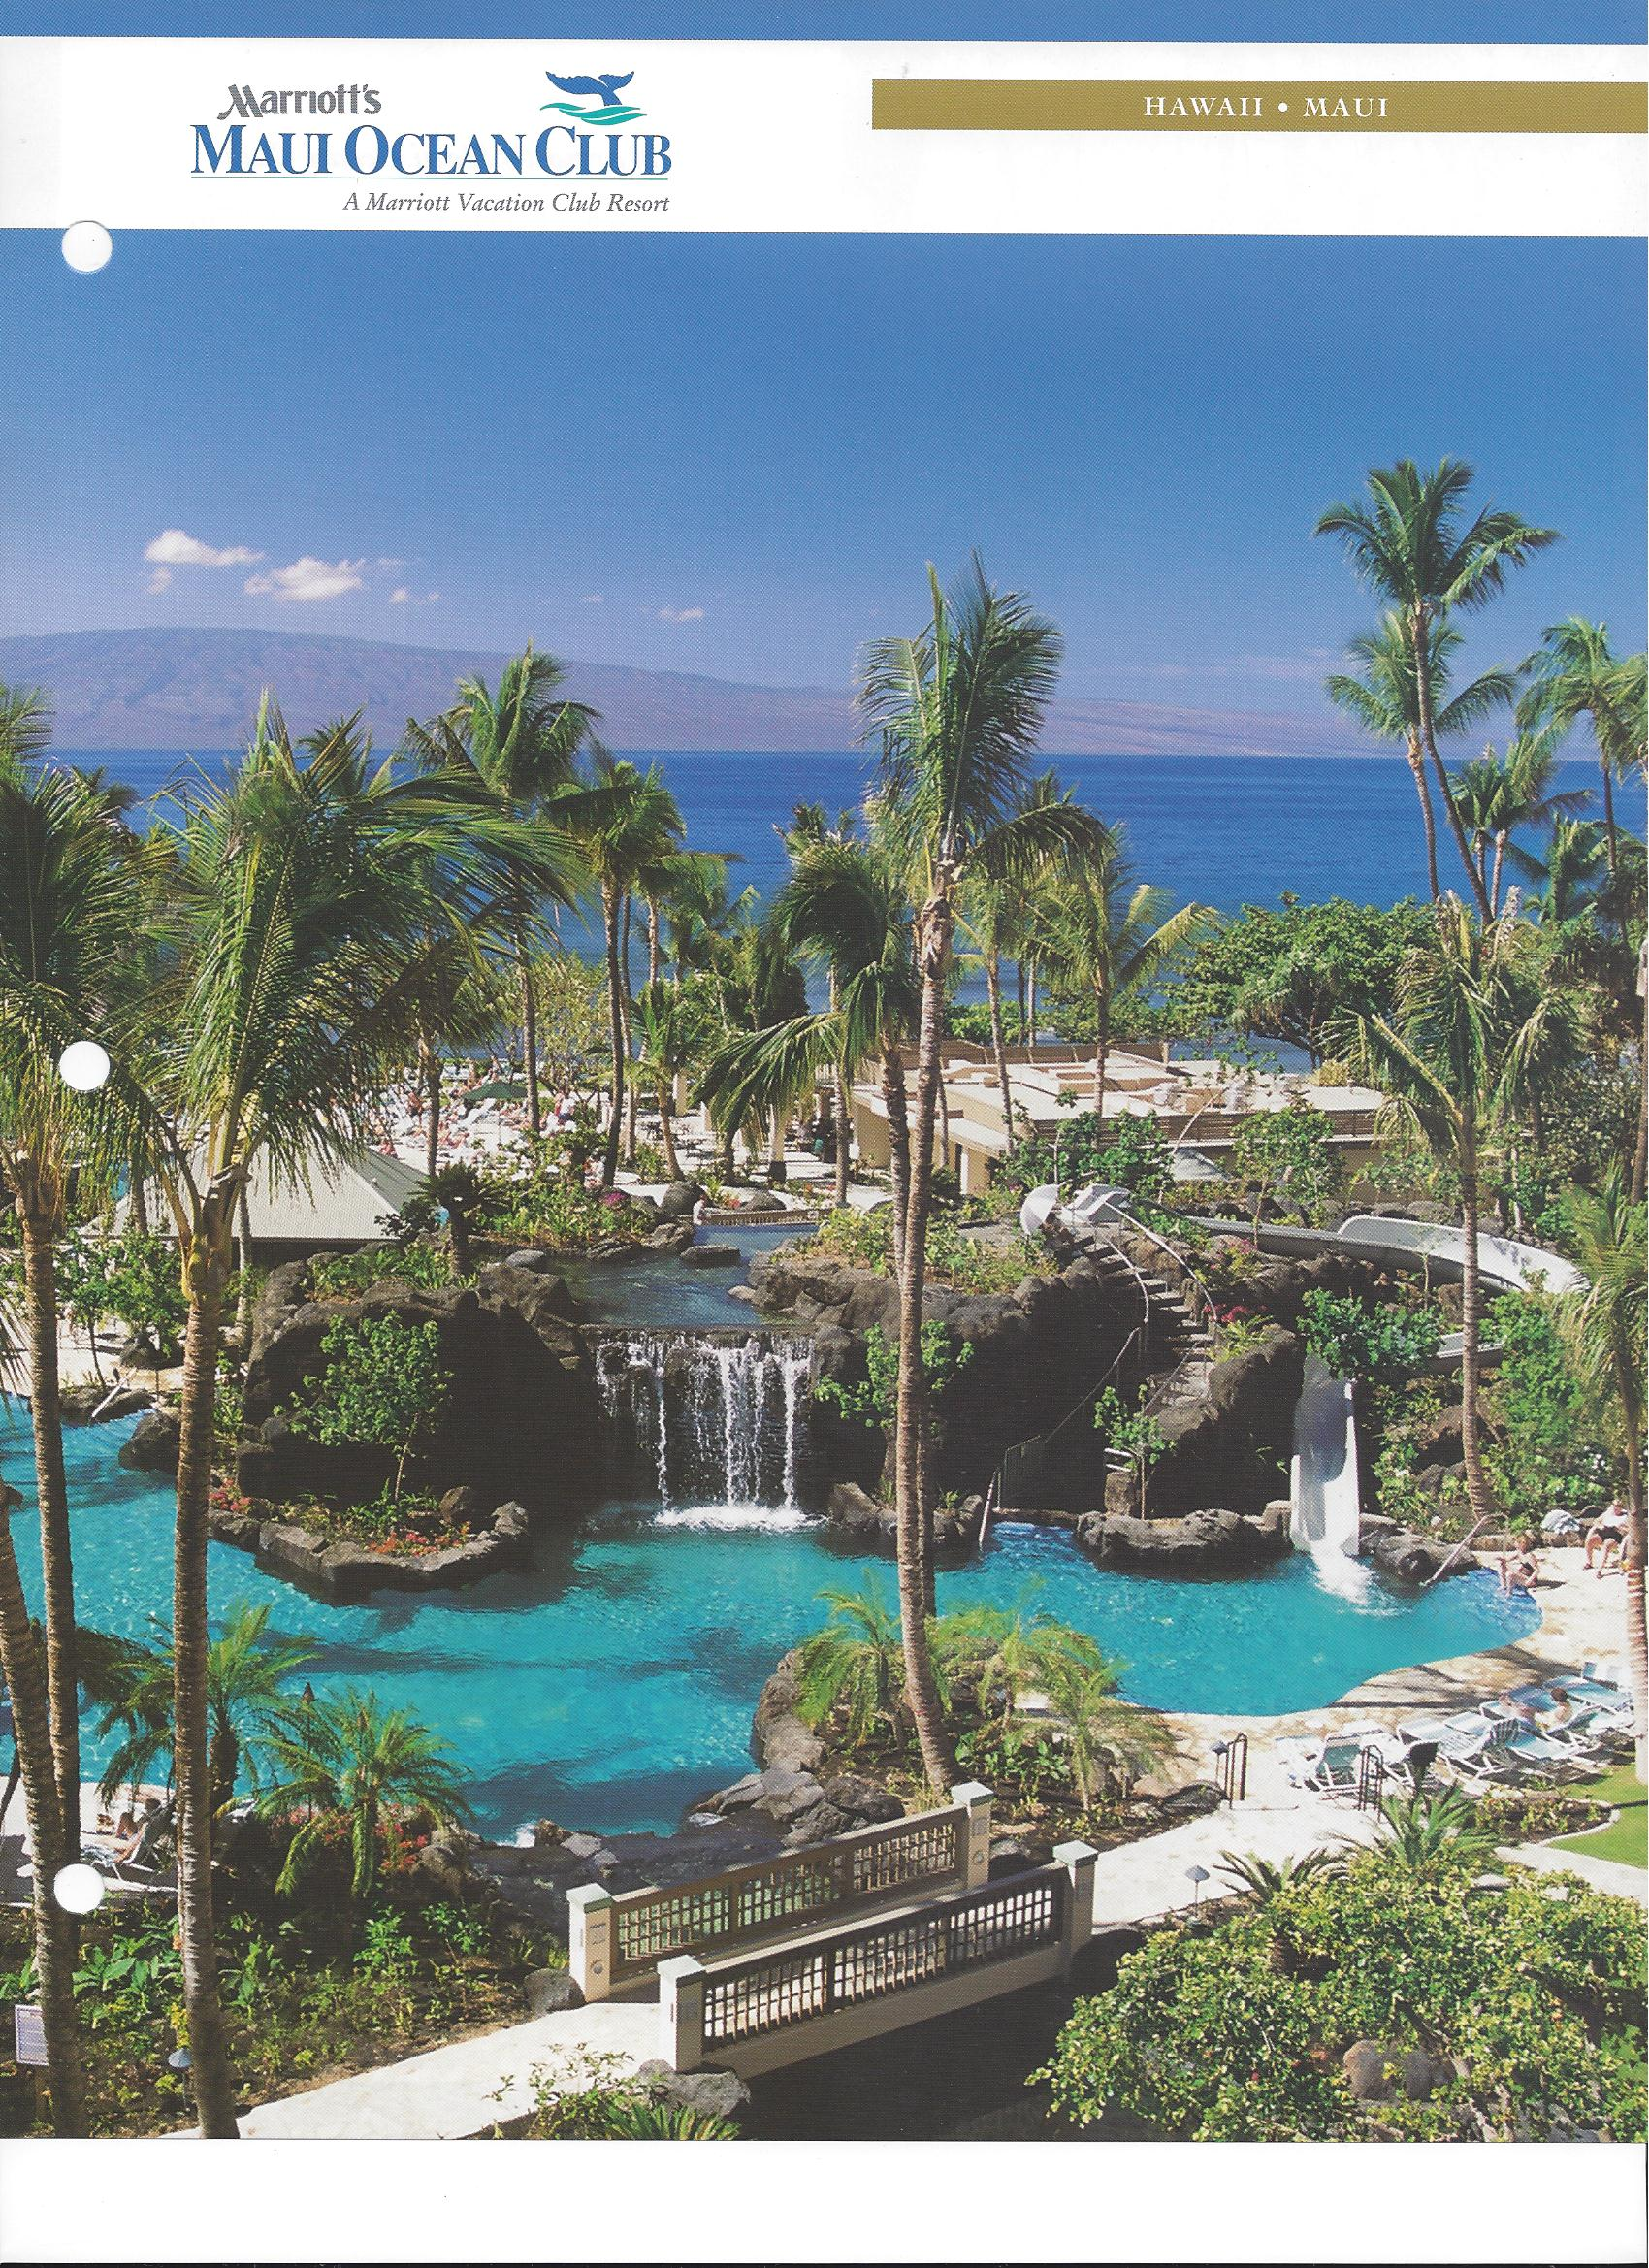 ENJOY MAUI DURING WINTER IN MAINE!